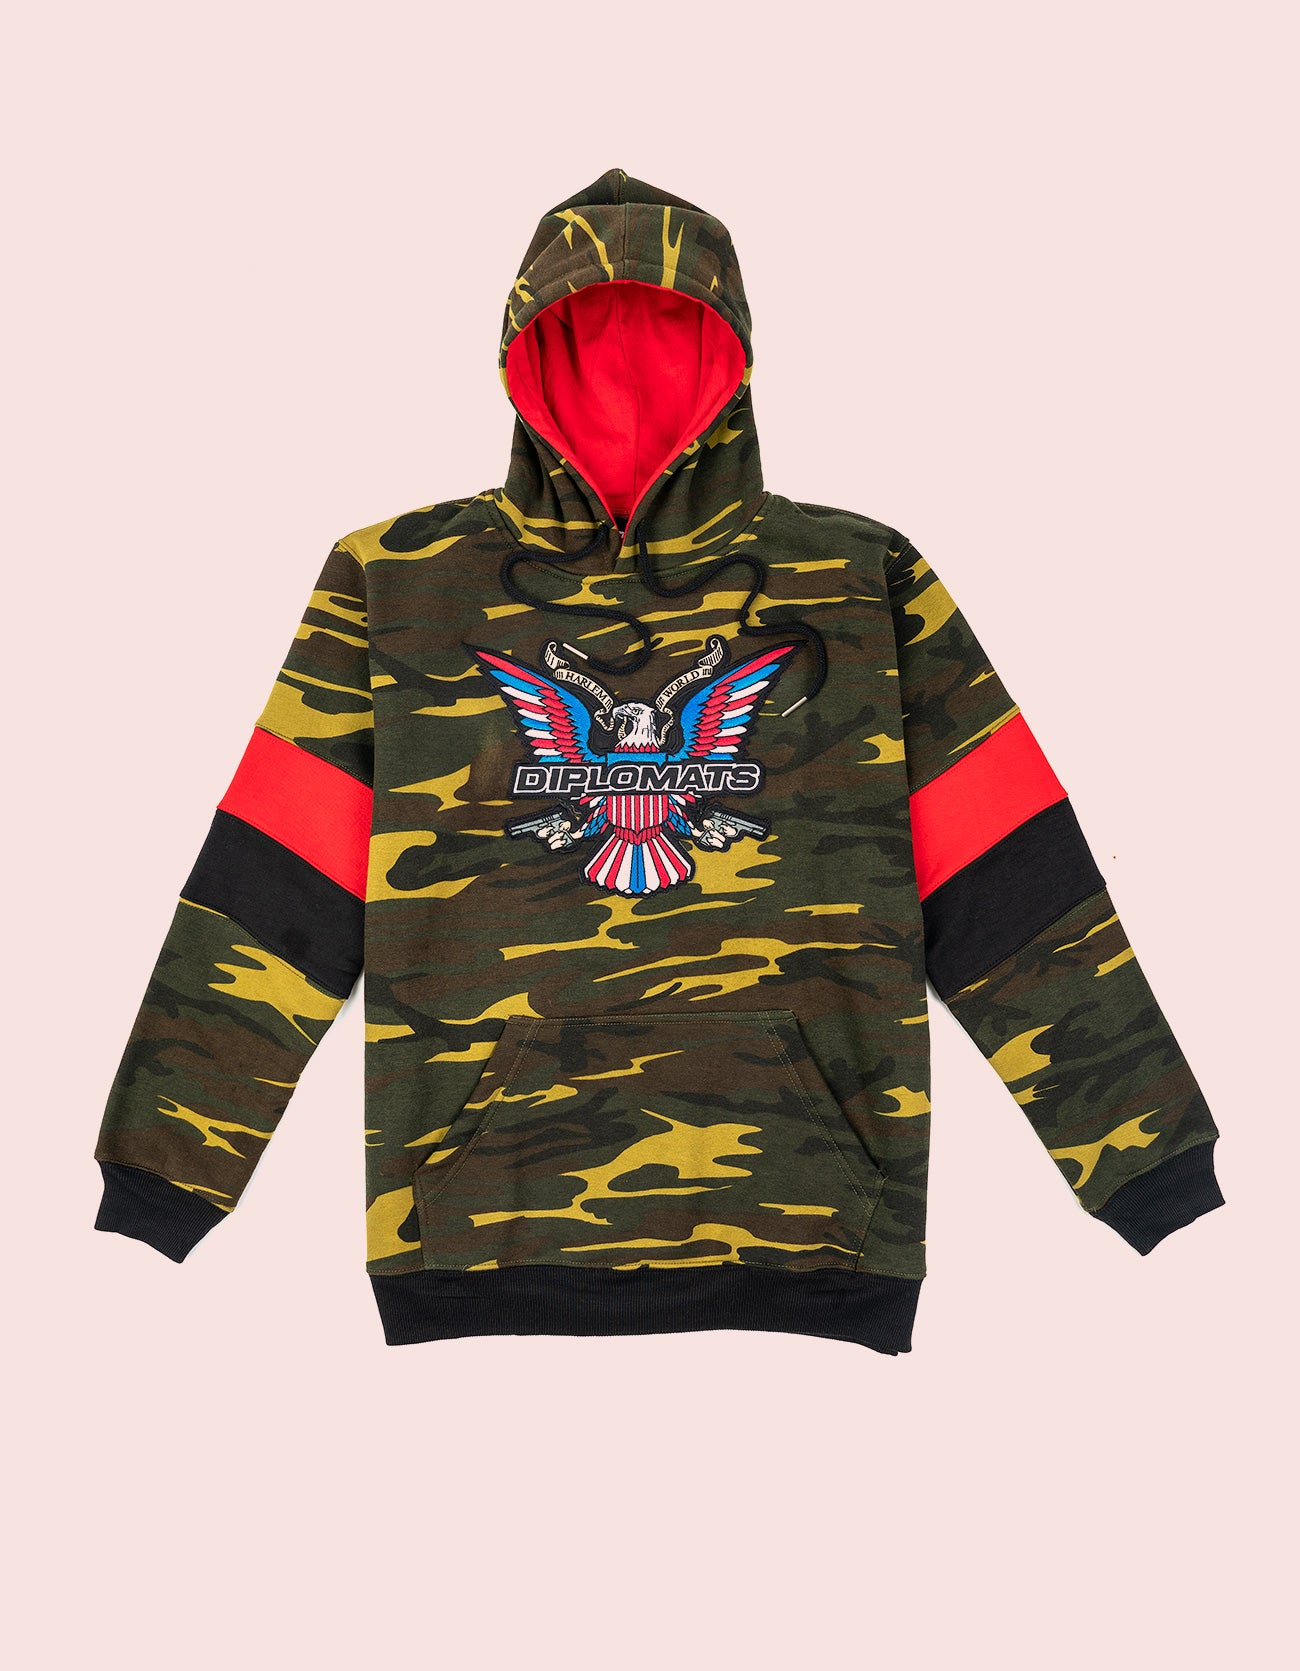 Dipset Couture Camo/Red/Blk  Sweatsuit